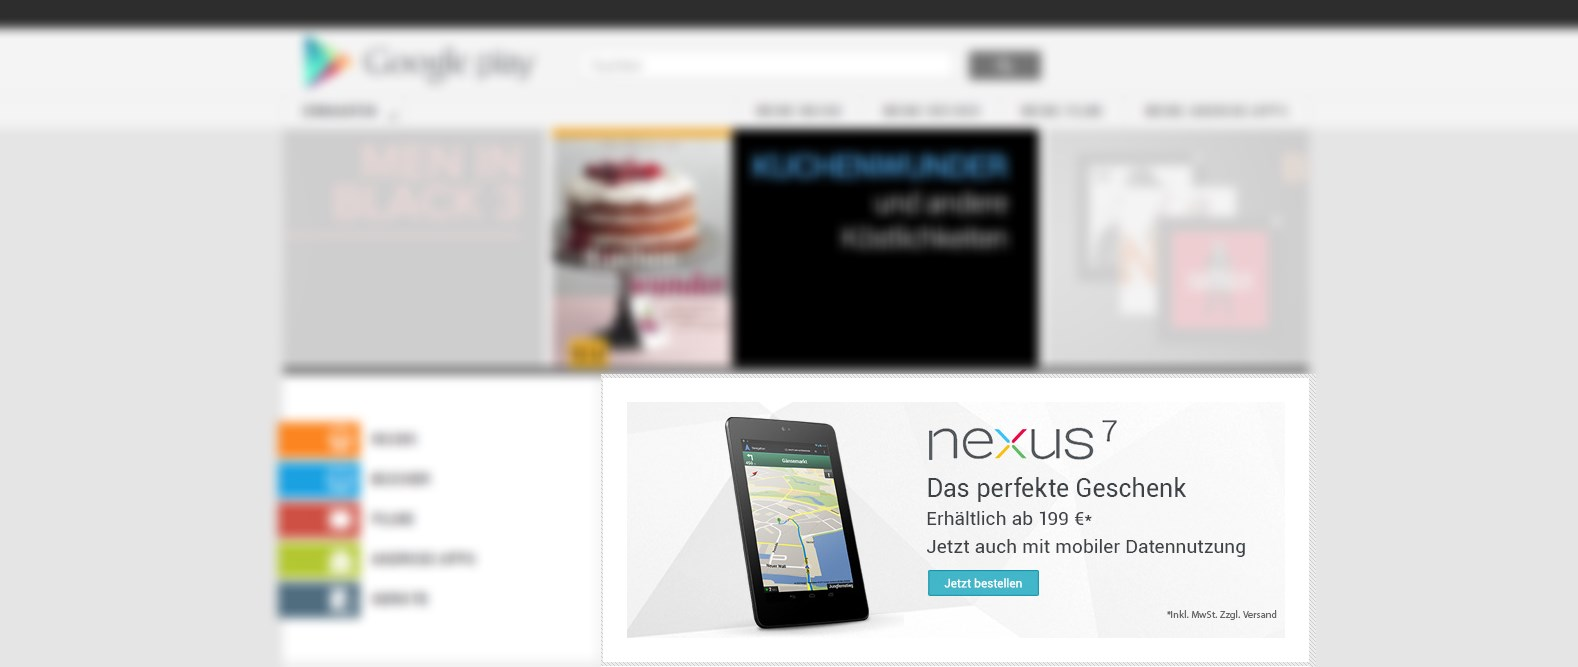 Android Asus Google LG Nexus 10 nexus 4 nexus 7 phone play Samsung tablet